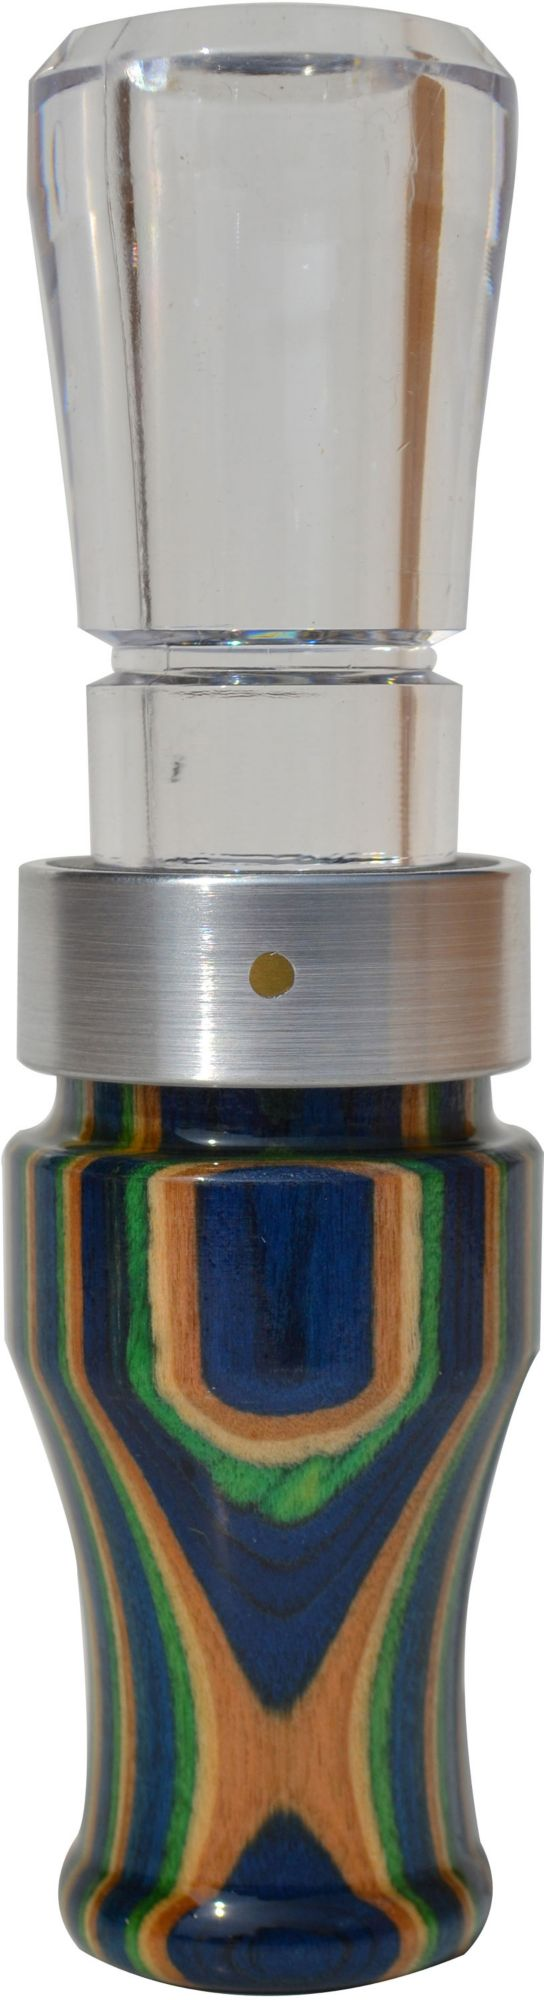 Buck Gardner Grey Ghost Diamond Wood Polycarbonate Goose Call, Blue/Green/Tan